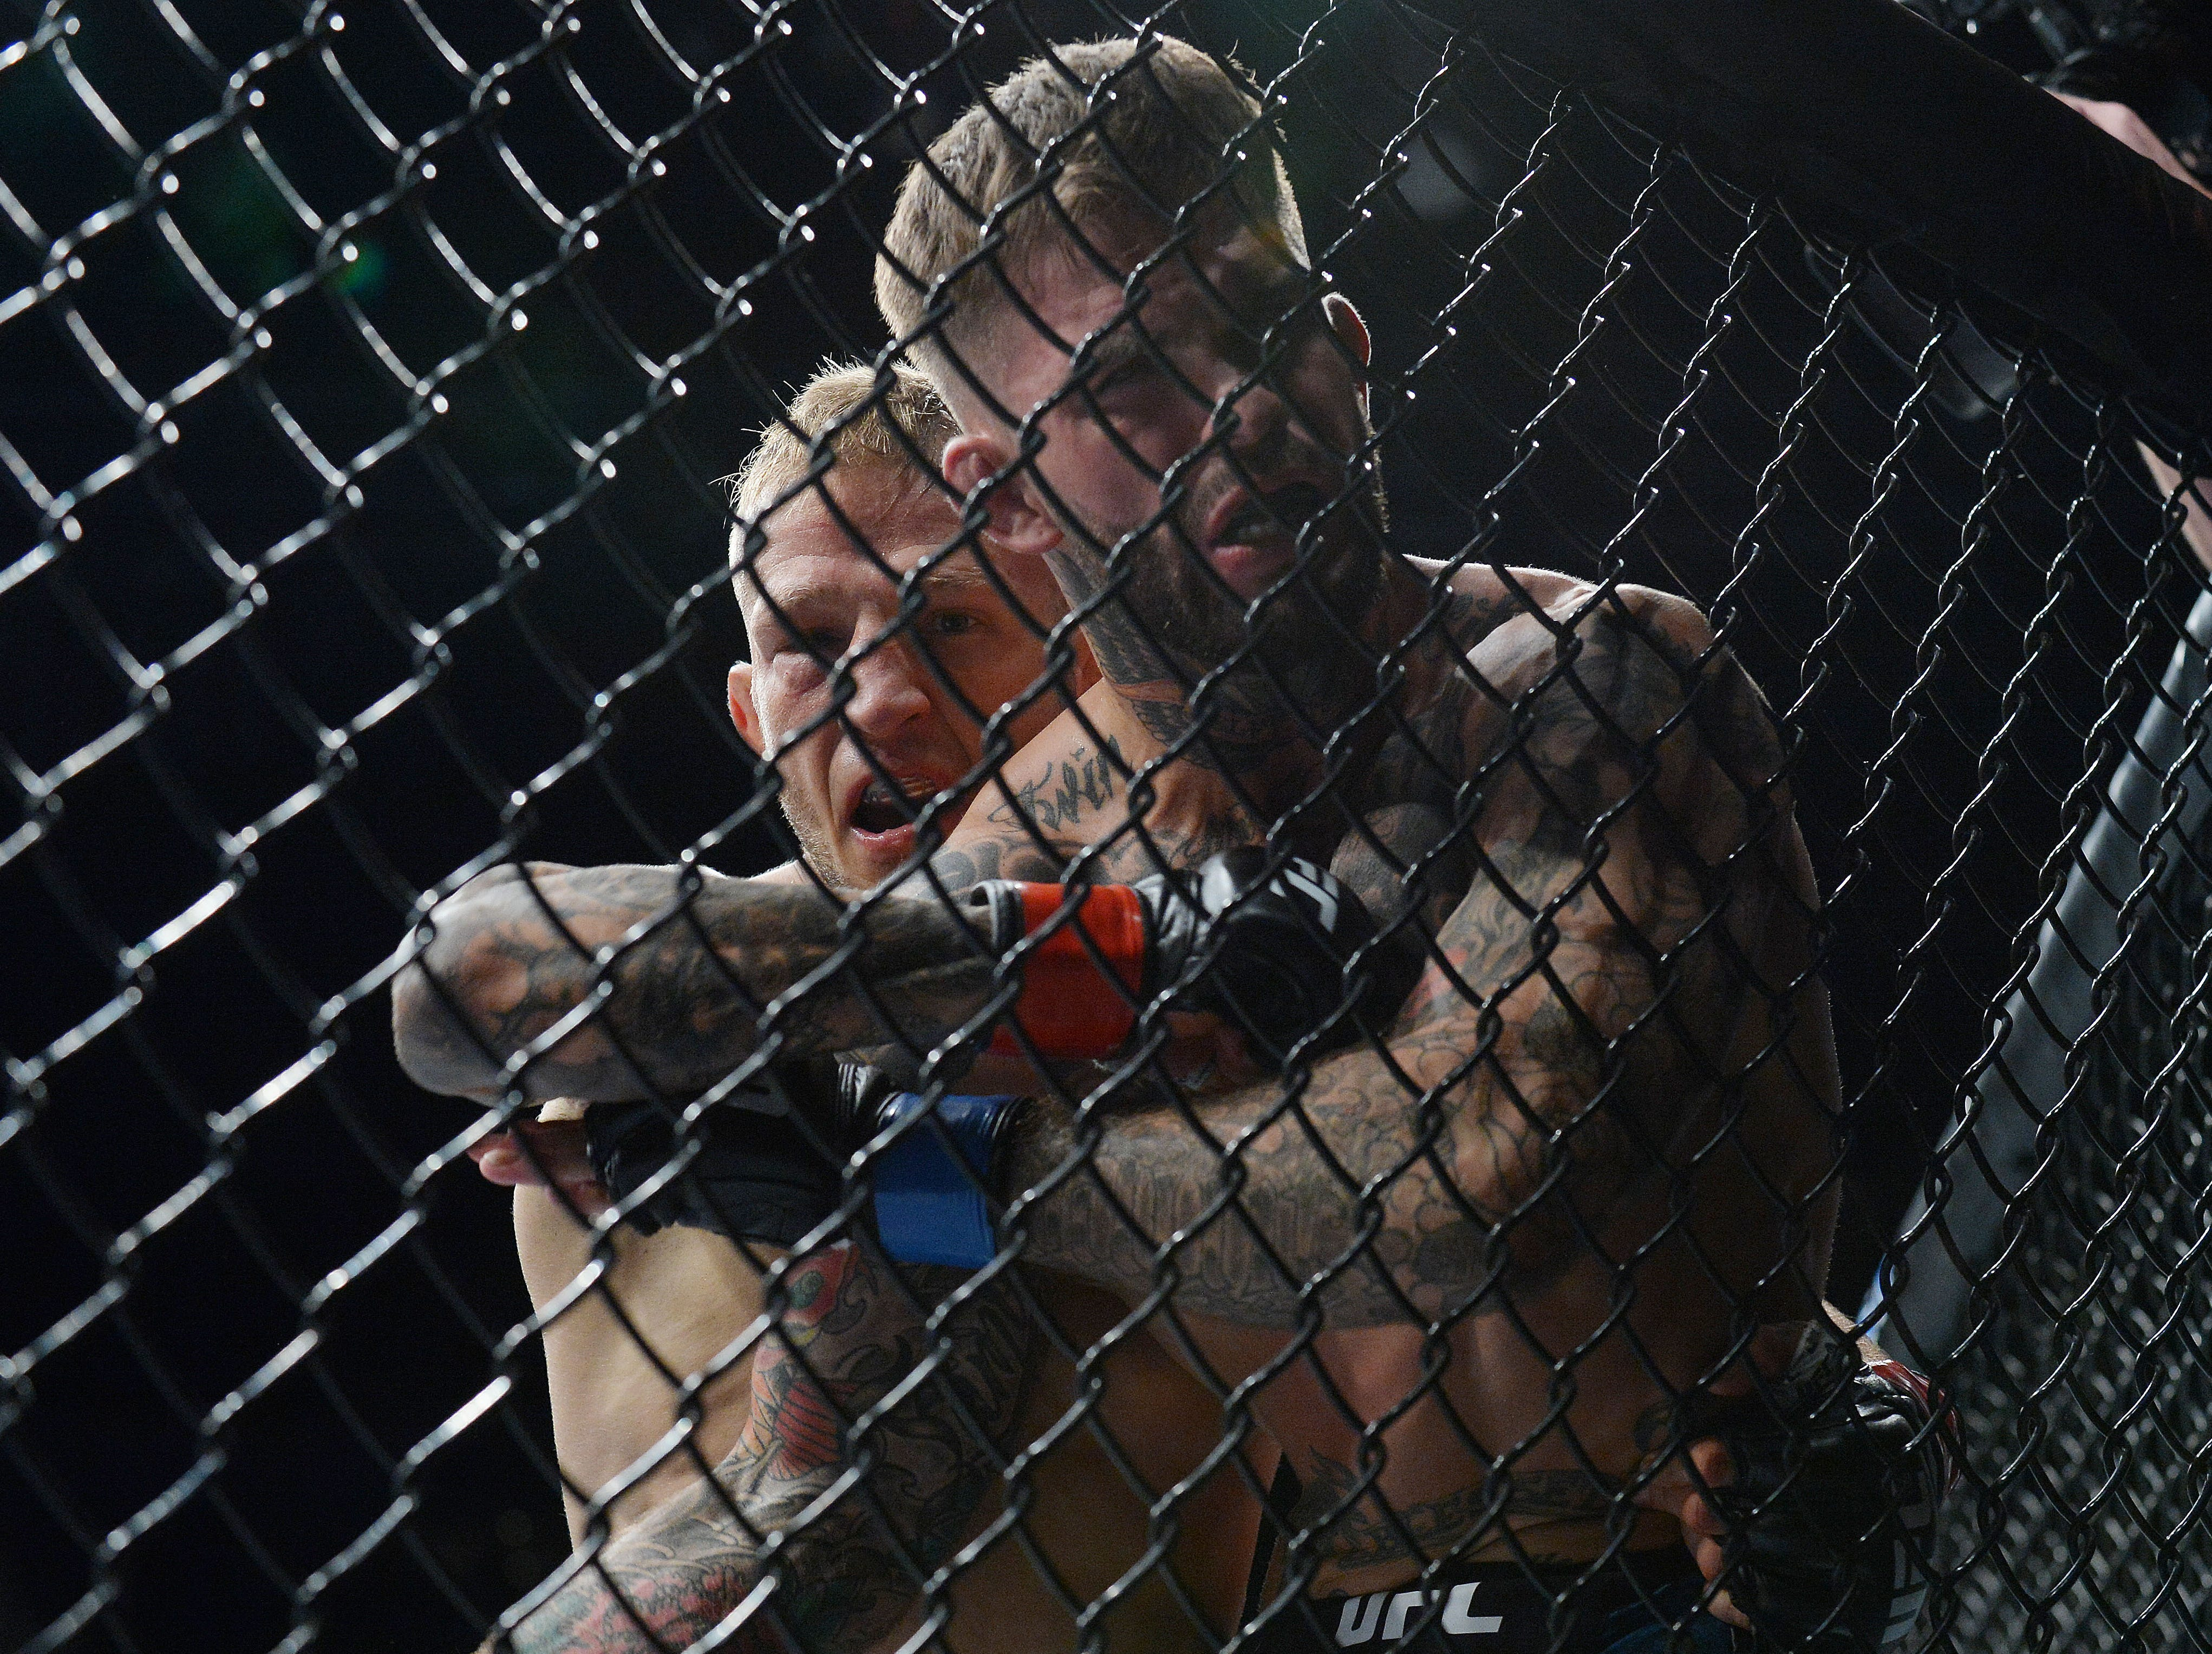 T.J. Dillashaw lands punches as Cody Garbrandt is pinned to the cage during UFC 227 at Staples Center.